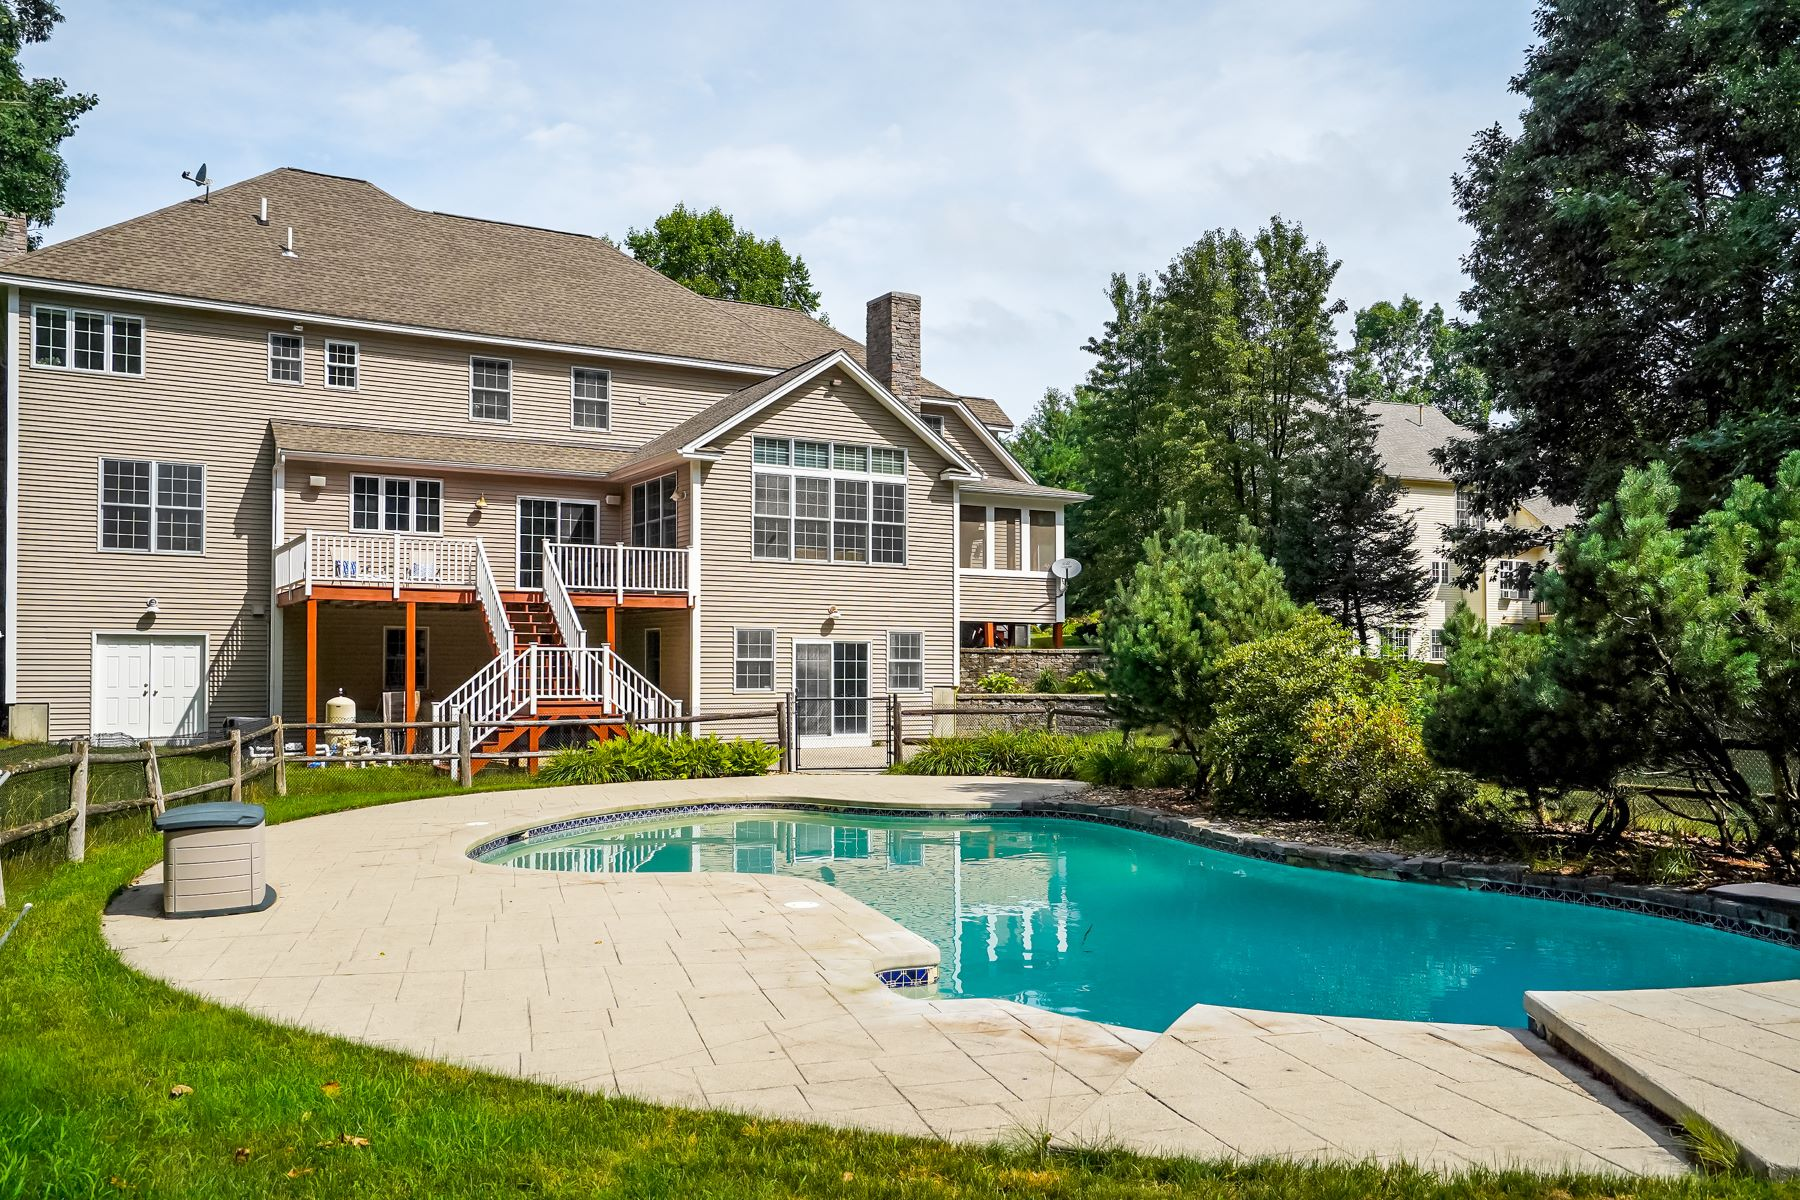 Single Family Homes for Active at 33 Long Hill Road Hollis, New Hampshire 03049 United States